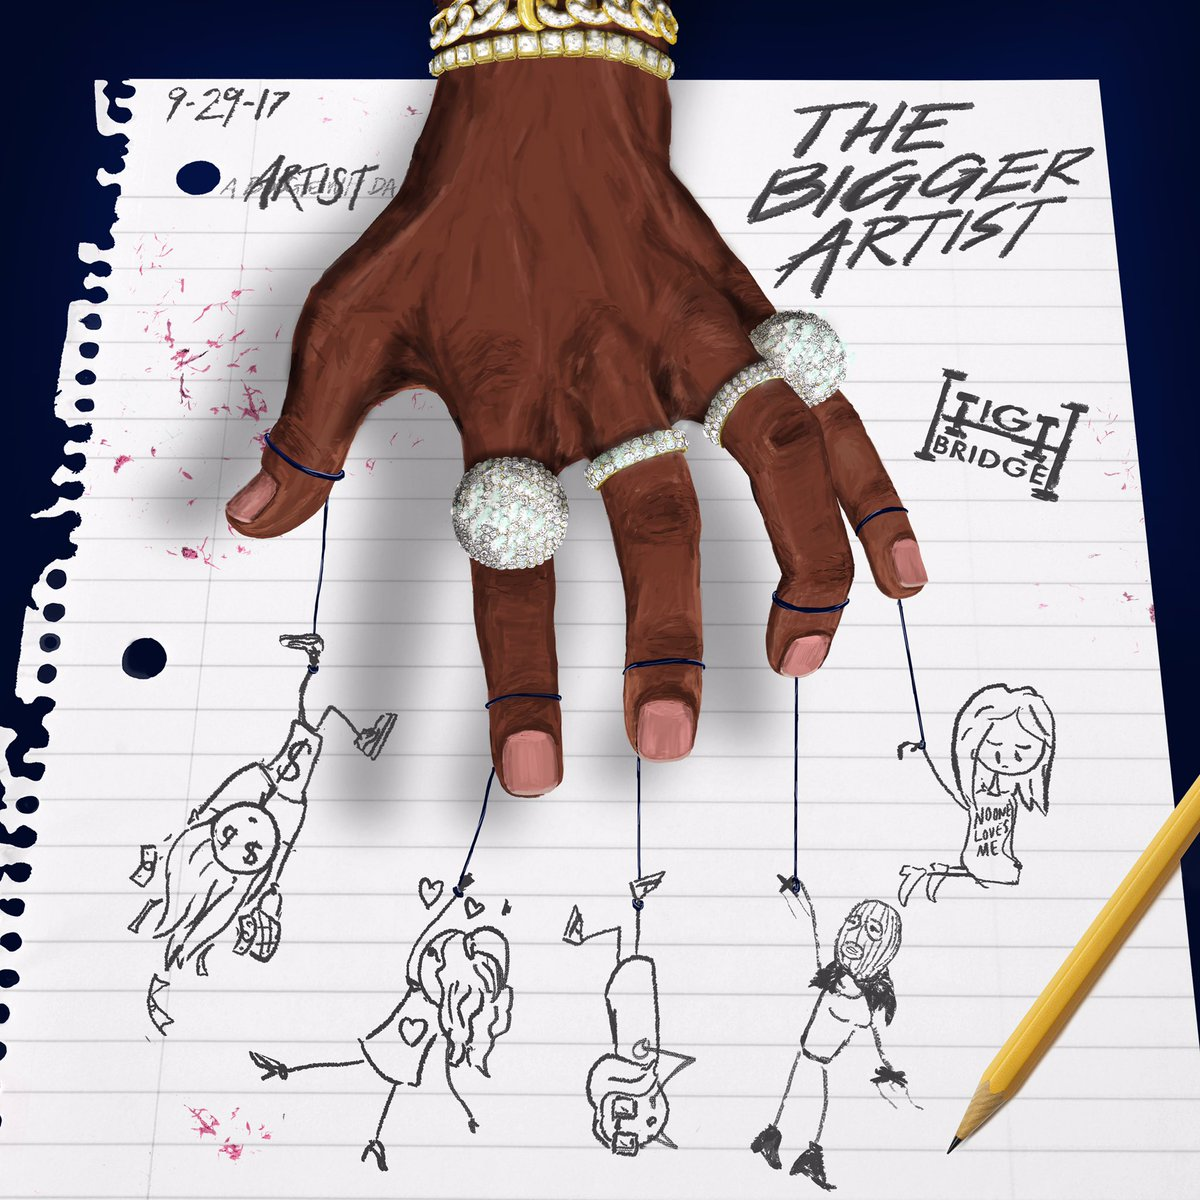 Review: The Bigger Artist: Long anticipated A Boogie debut album worth the wait